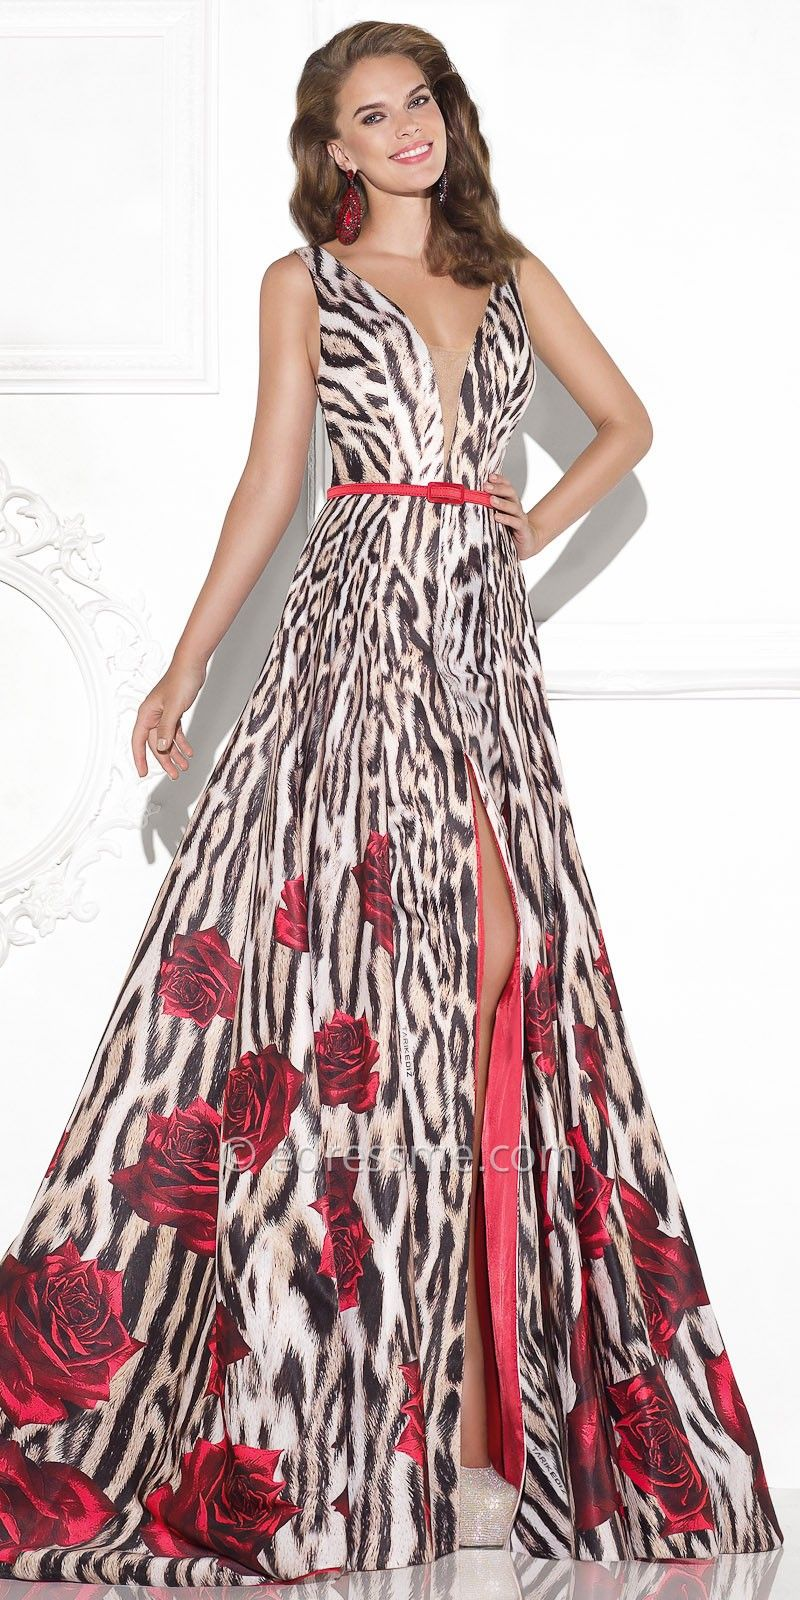 Lecea rose and animal print evening dress by tarik ediz wild lecea rose and animal print evening dress by tarik ediz ombrellifo Gallery